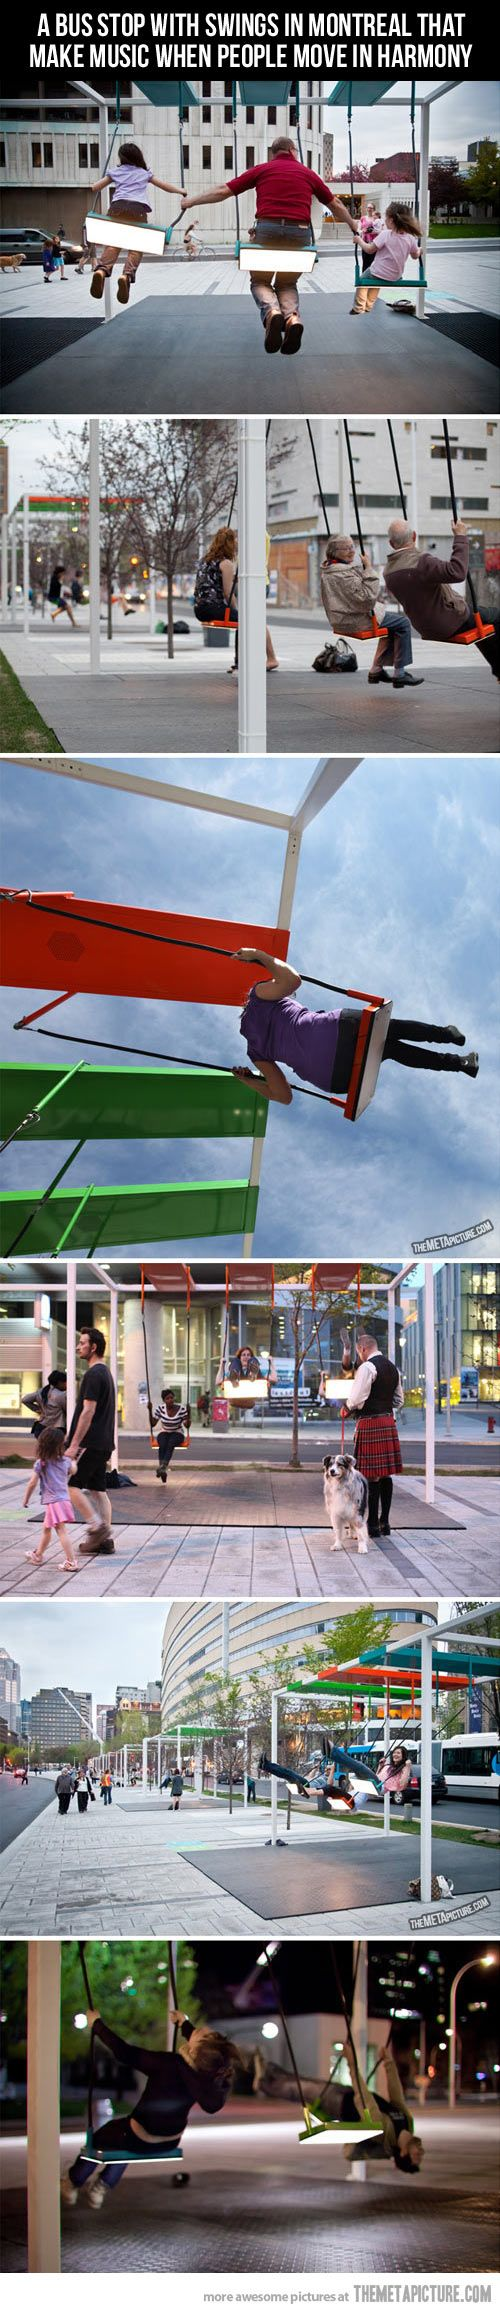 A bus stop with swings in Montreal that make music when people move in harmony. I absolutely LOVE this!